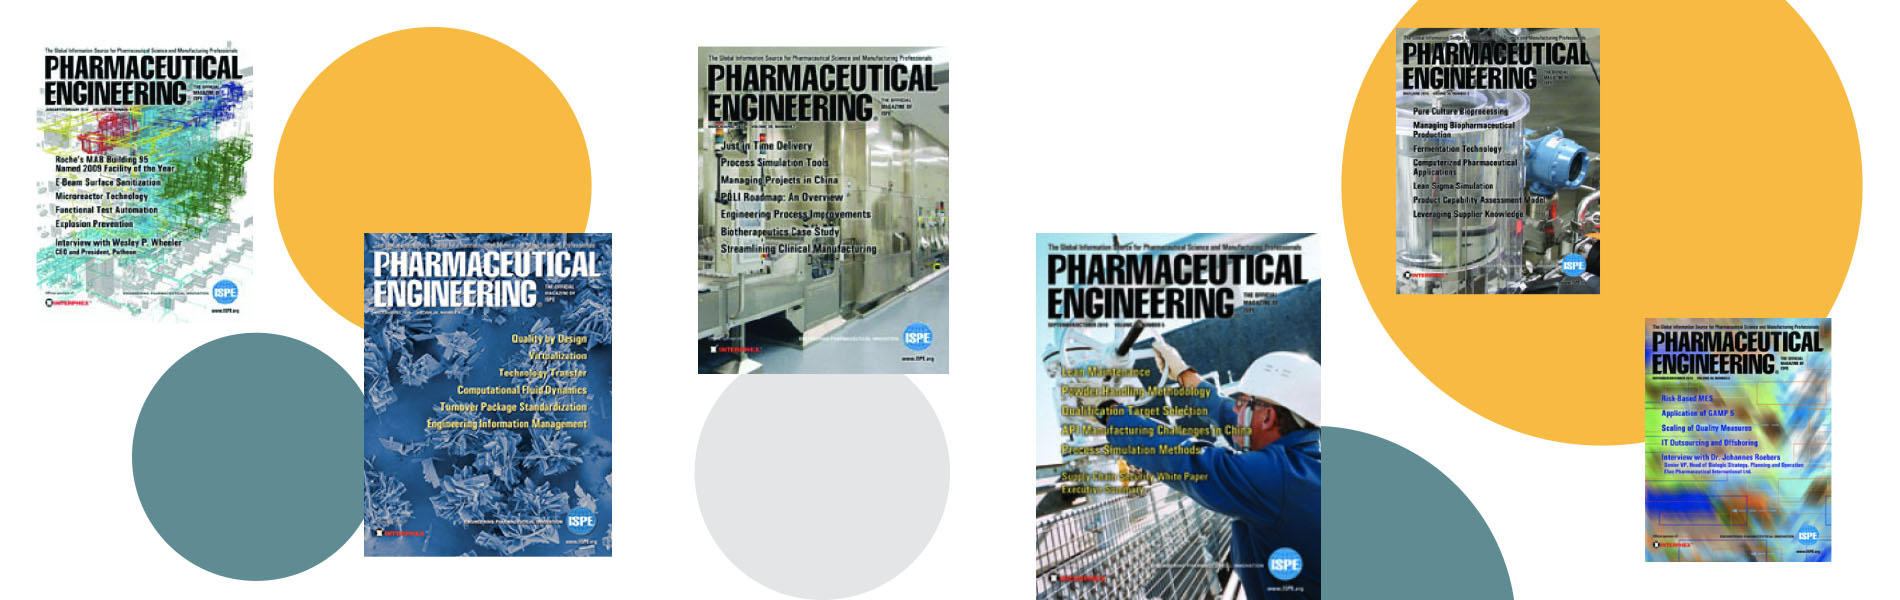 What Were You Reading 10 Years Ago in Pharmaceutical Engineering®?